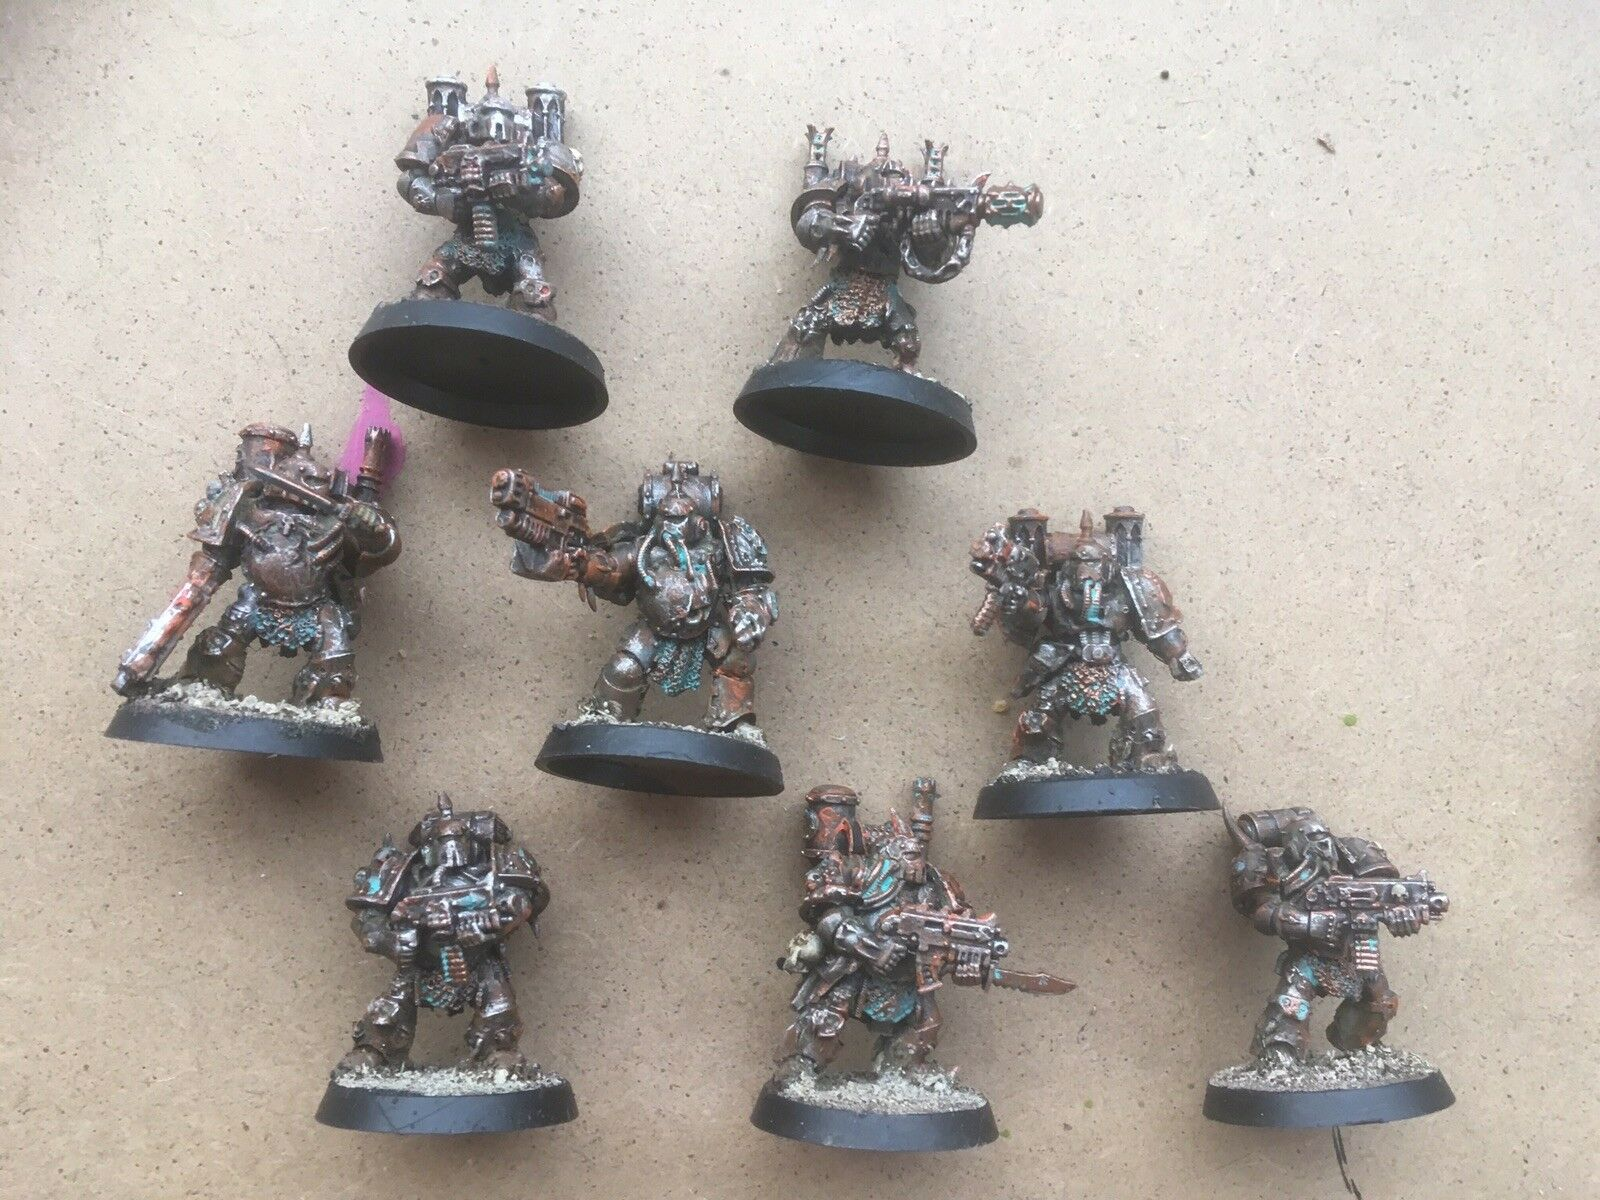 NEW 8 Painted Death Guard Nurgle Chaos Space Marines Forgeworld